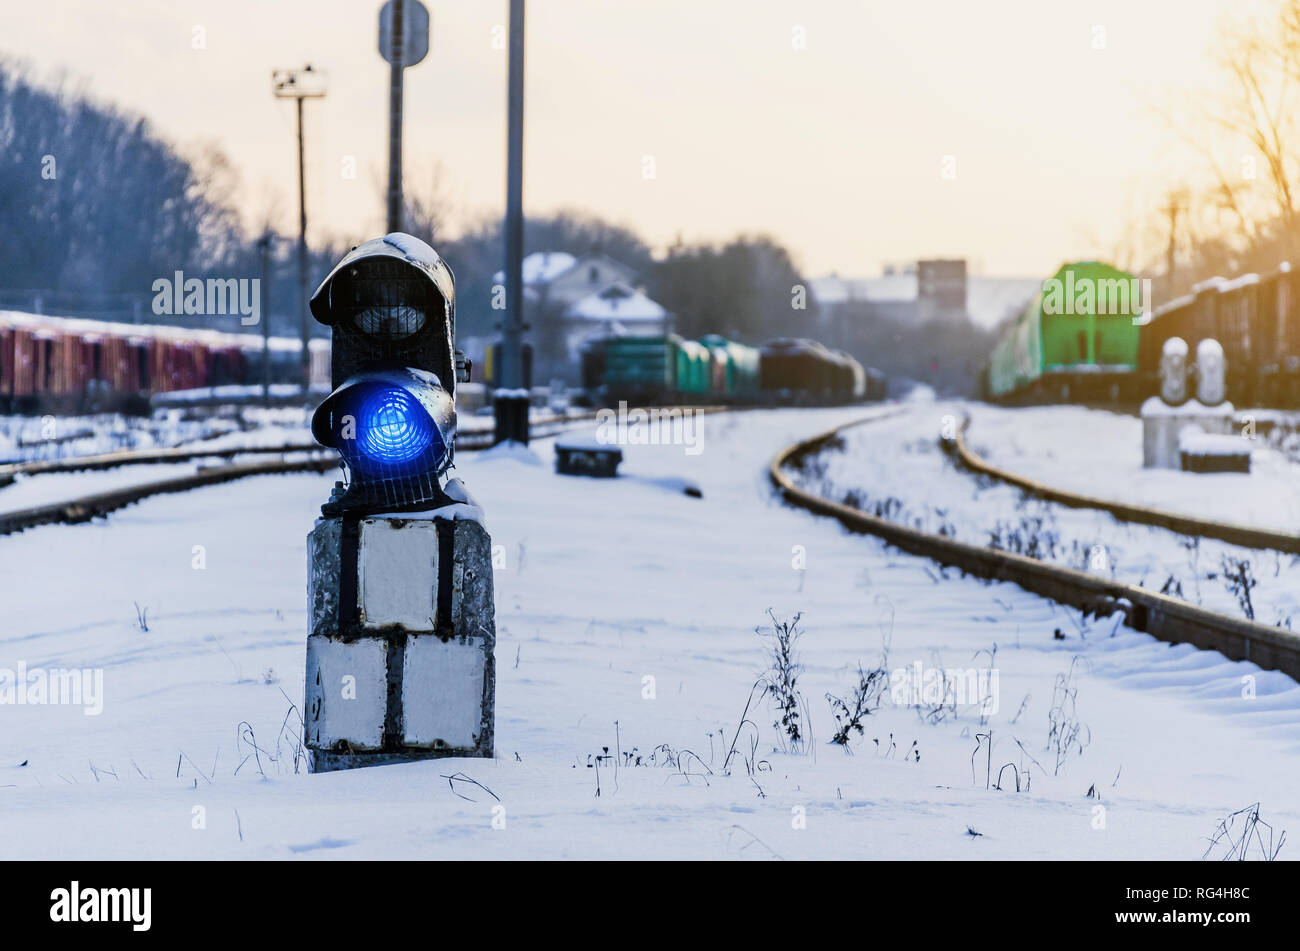 Vintage railway traffic light on old snow covered railway station. Trains, rails, travel, abandoned. Stock Photo